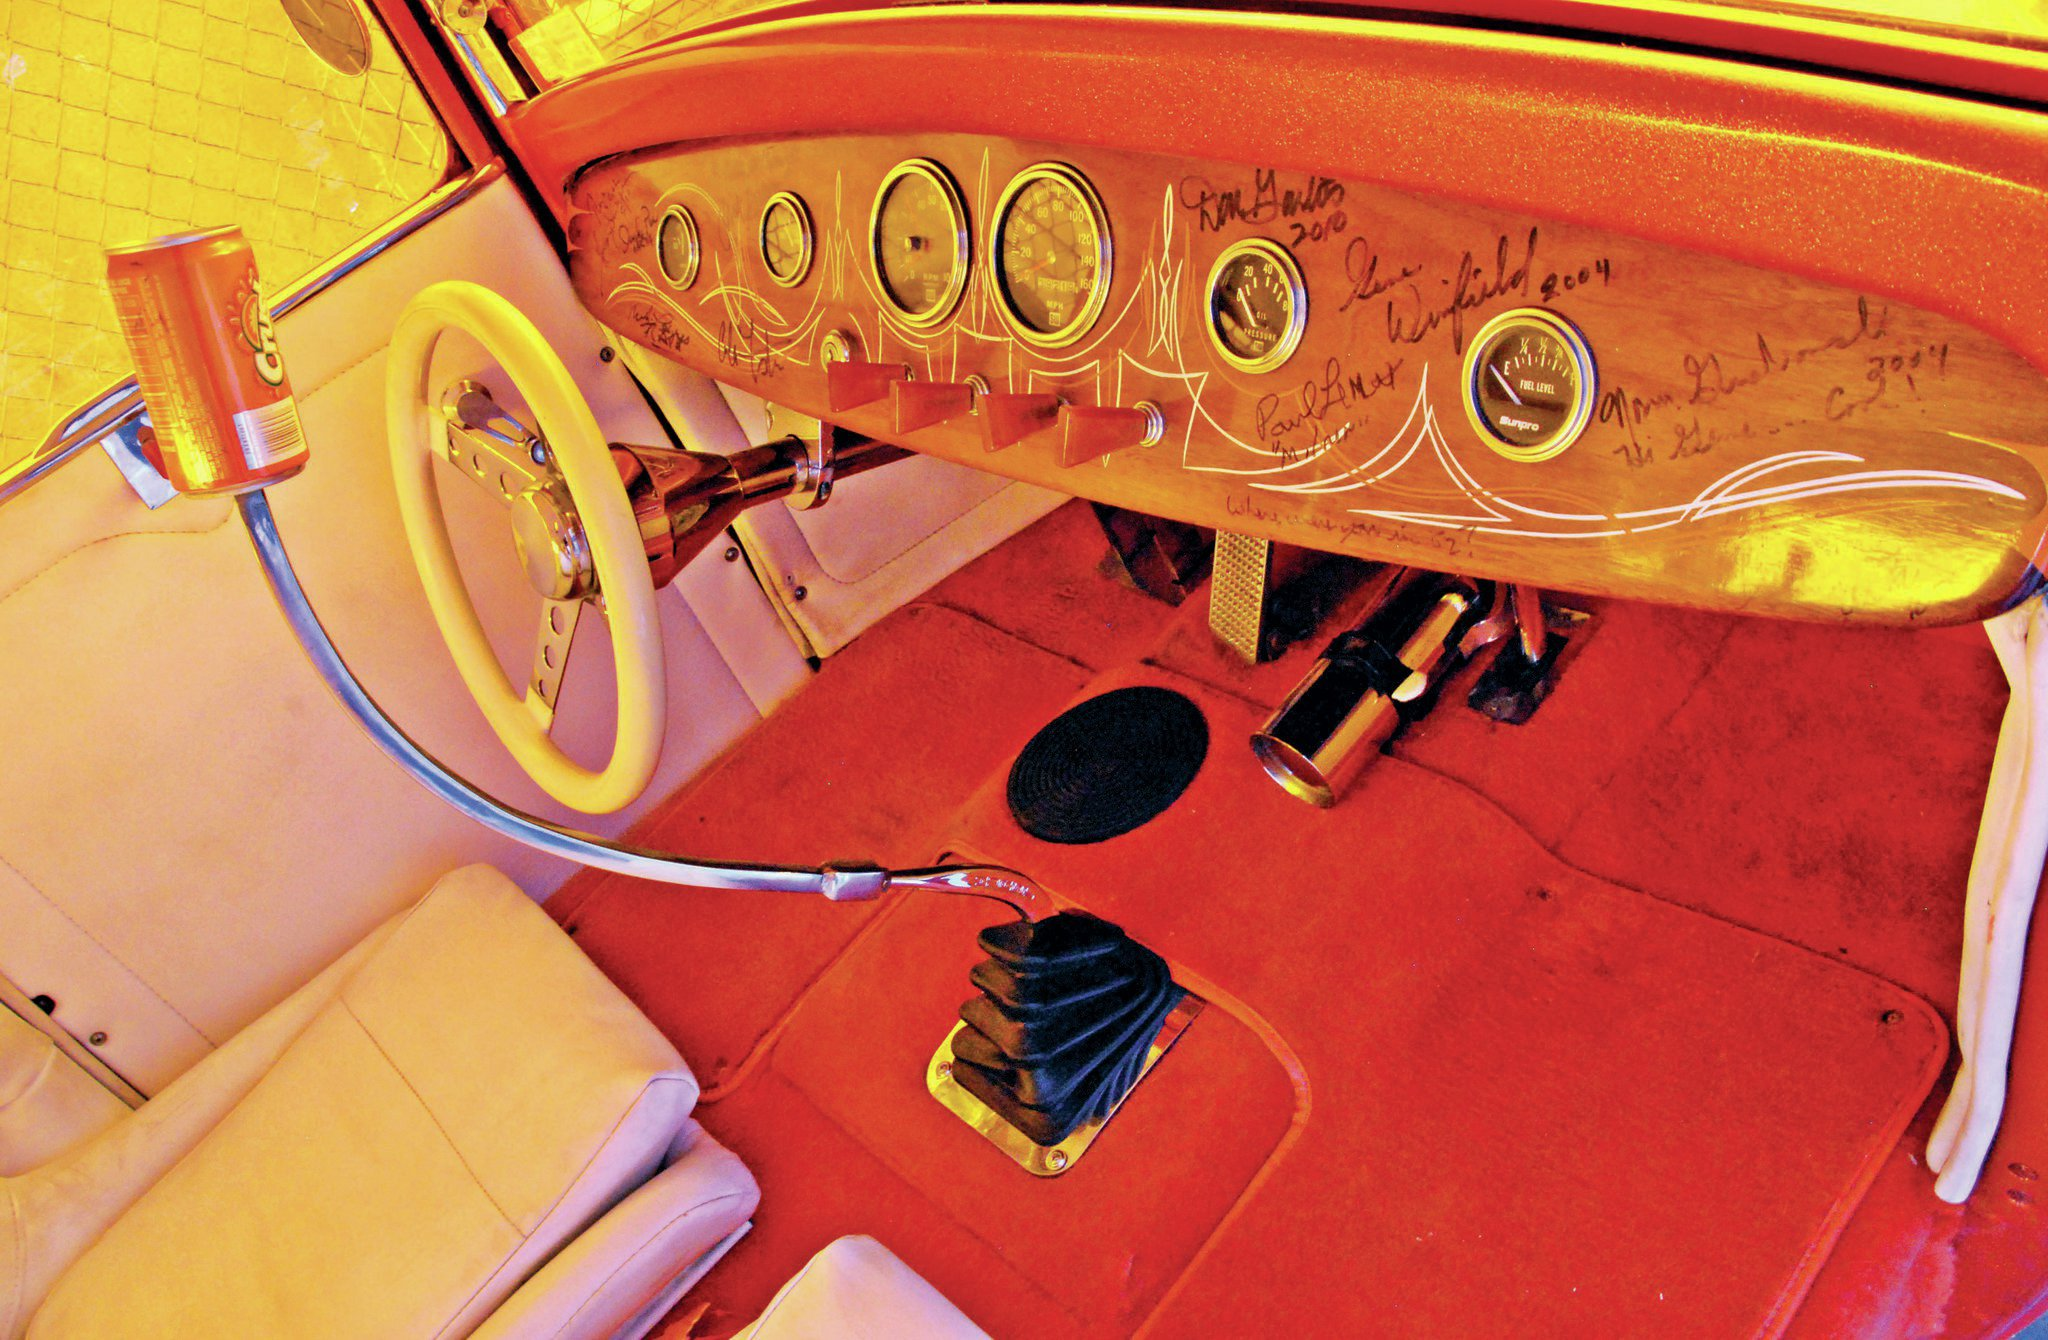 Wild shift lever (with an Orange Crush can on top, what else?) controls a Muncie four-speed out of a '66 Chevelle. Joining the trans to the Hemi is a rare Moon Chevy-to-Hemi adapter. It may be tough to see in the photo, but Vinny has some big-time autographs on his dashboard—Don Garlits, Gene Winfield, and Norm Grabowski, to name a few.